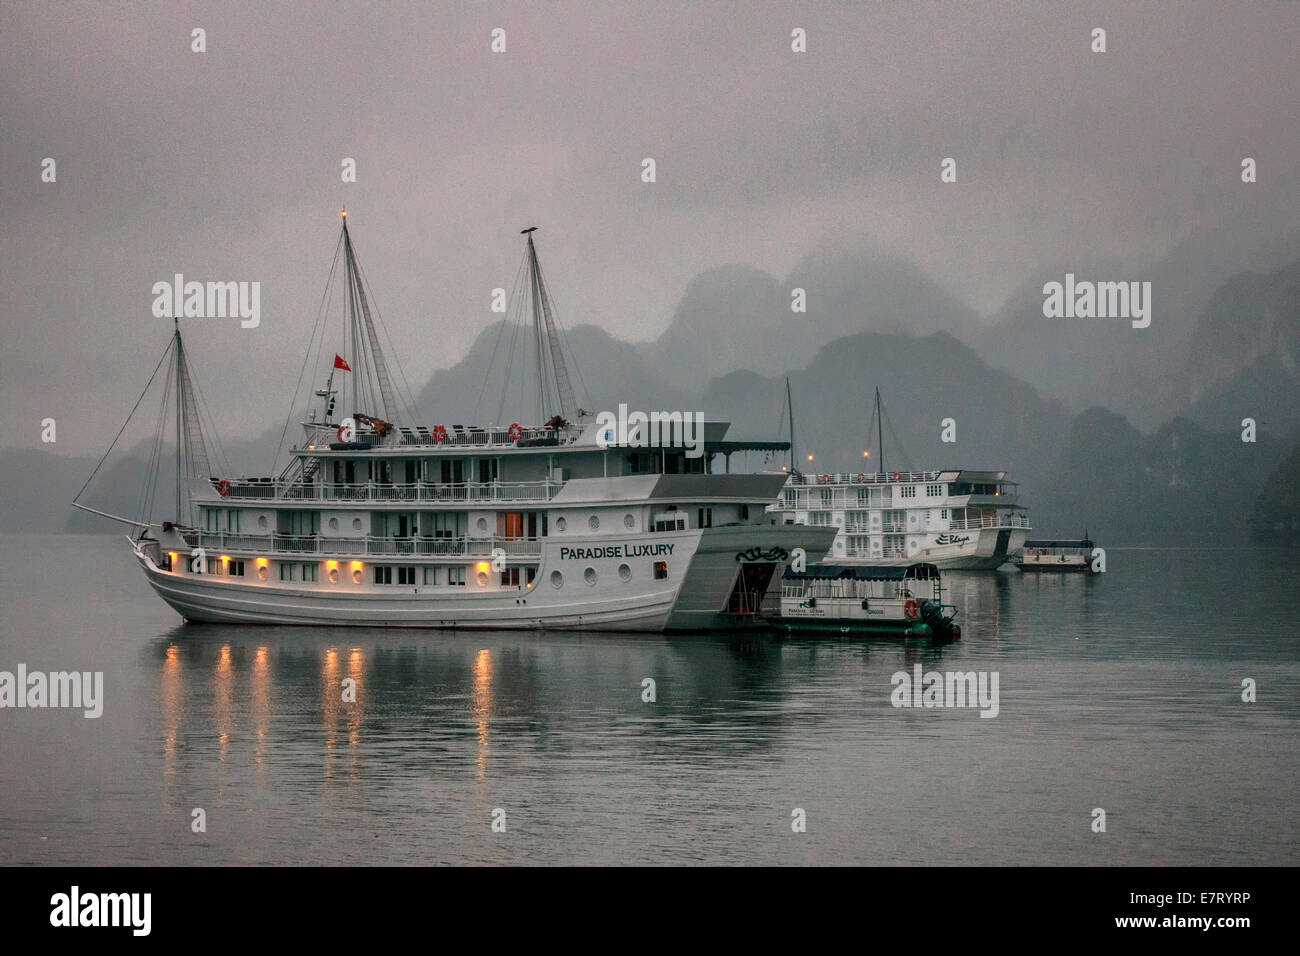 Cruise junk boat sits under early morning fog in front of limestone mountains. - Stock Image